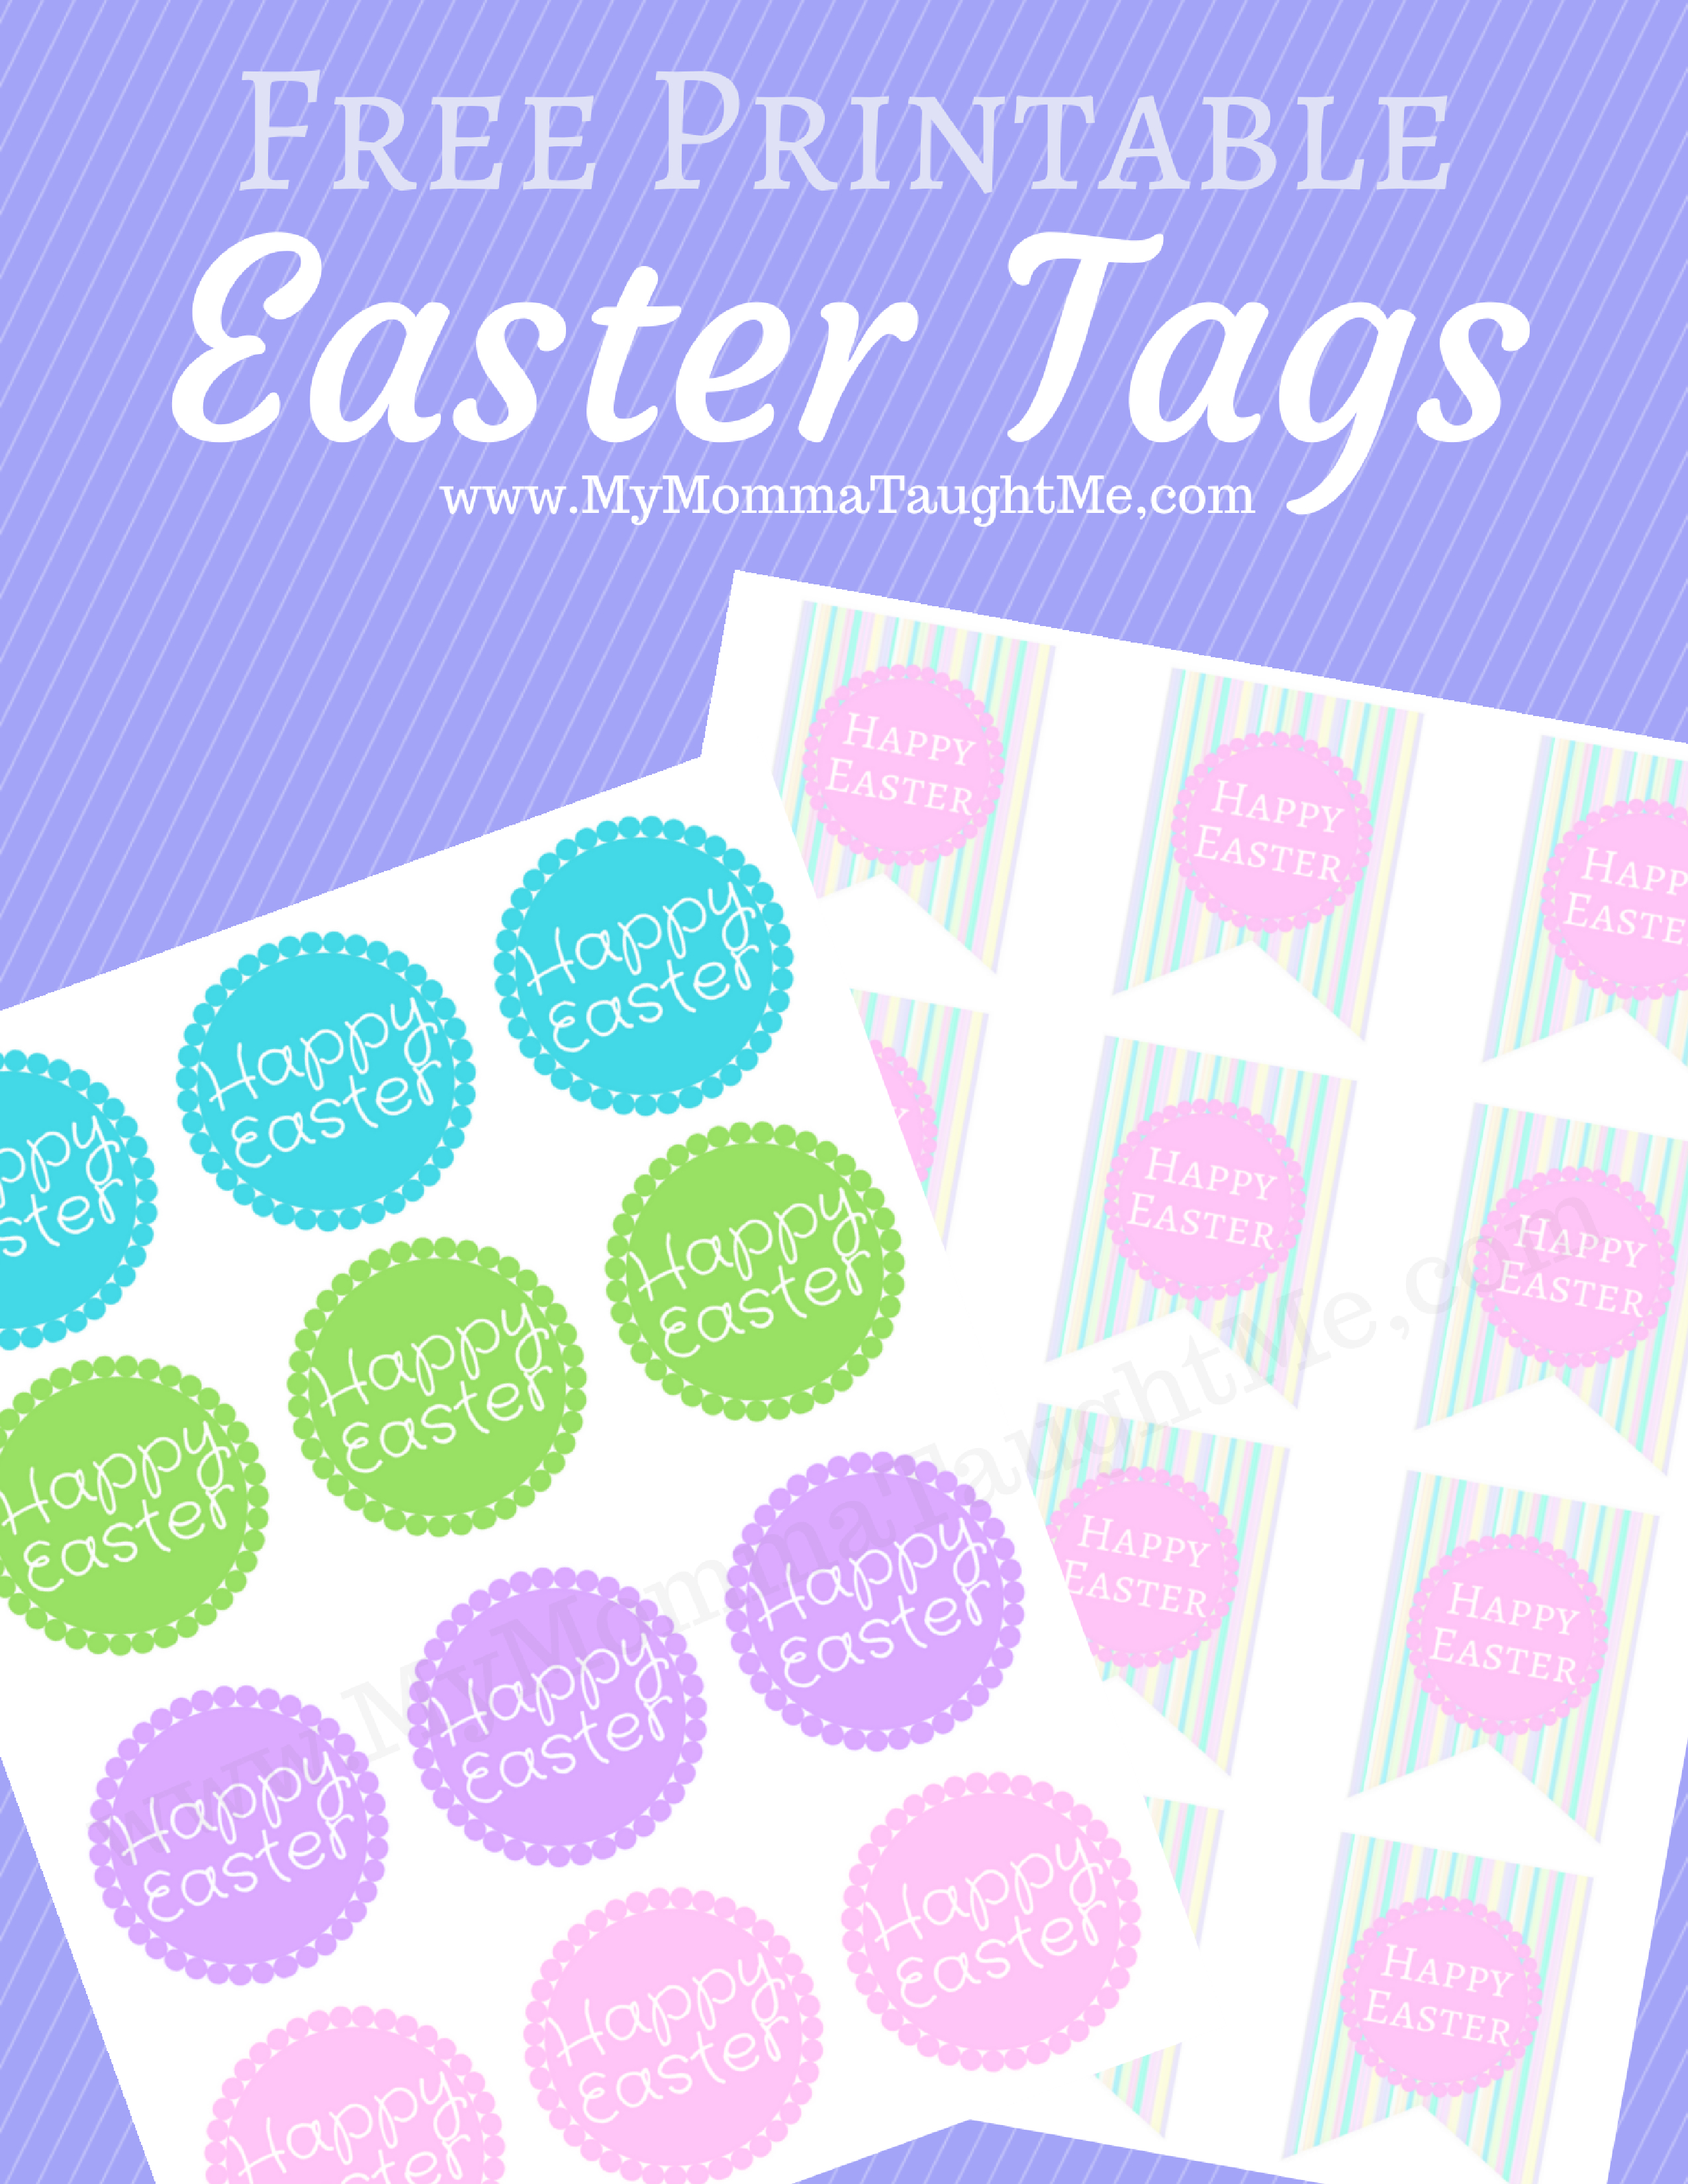 2 Different Free Printable Happy Easter Tags - My Momma Taught Me - Free Printable Easter Tags